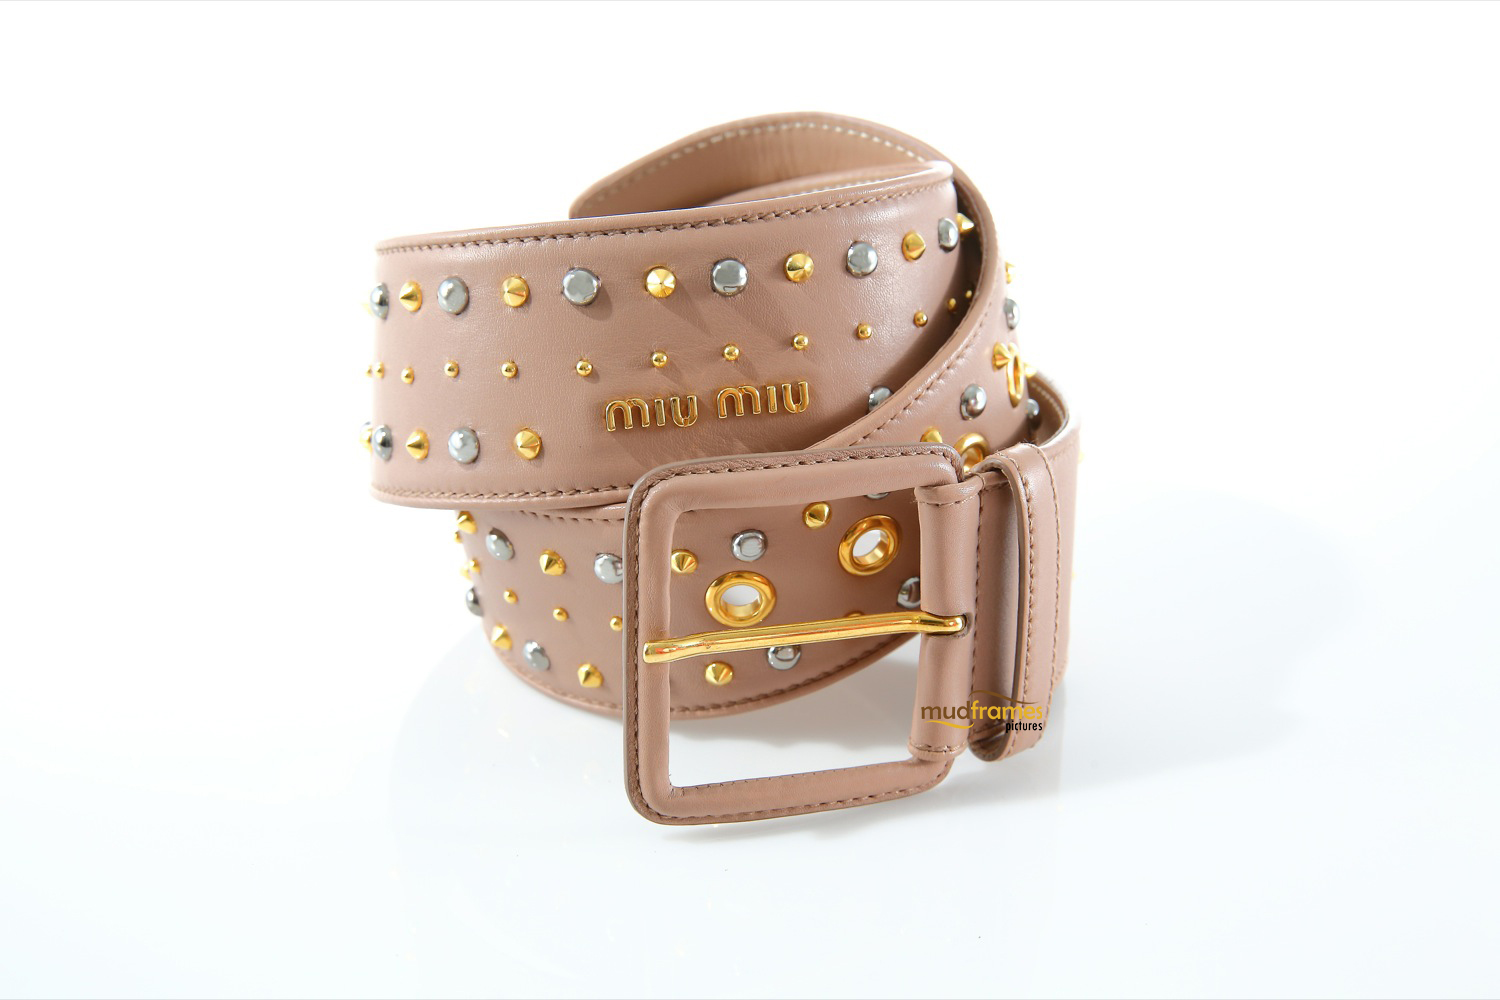 Miu Miu belt on white background